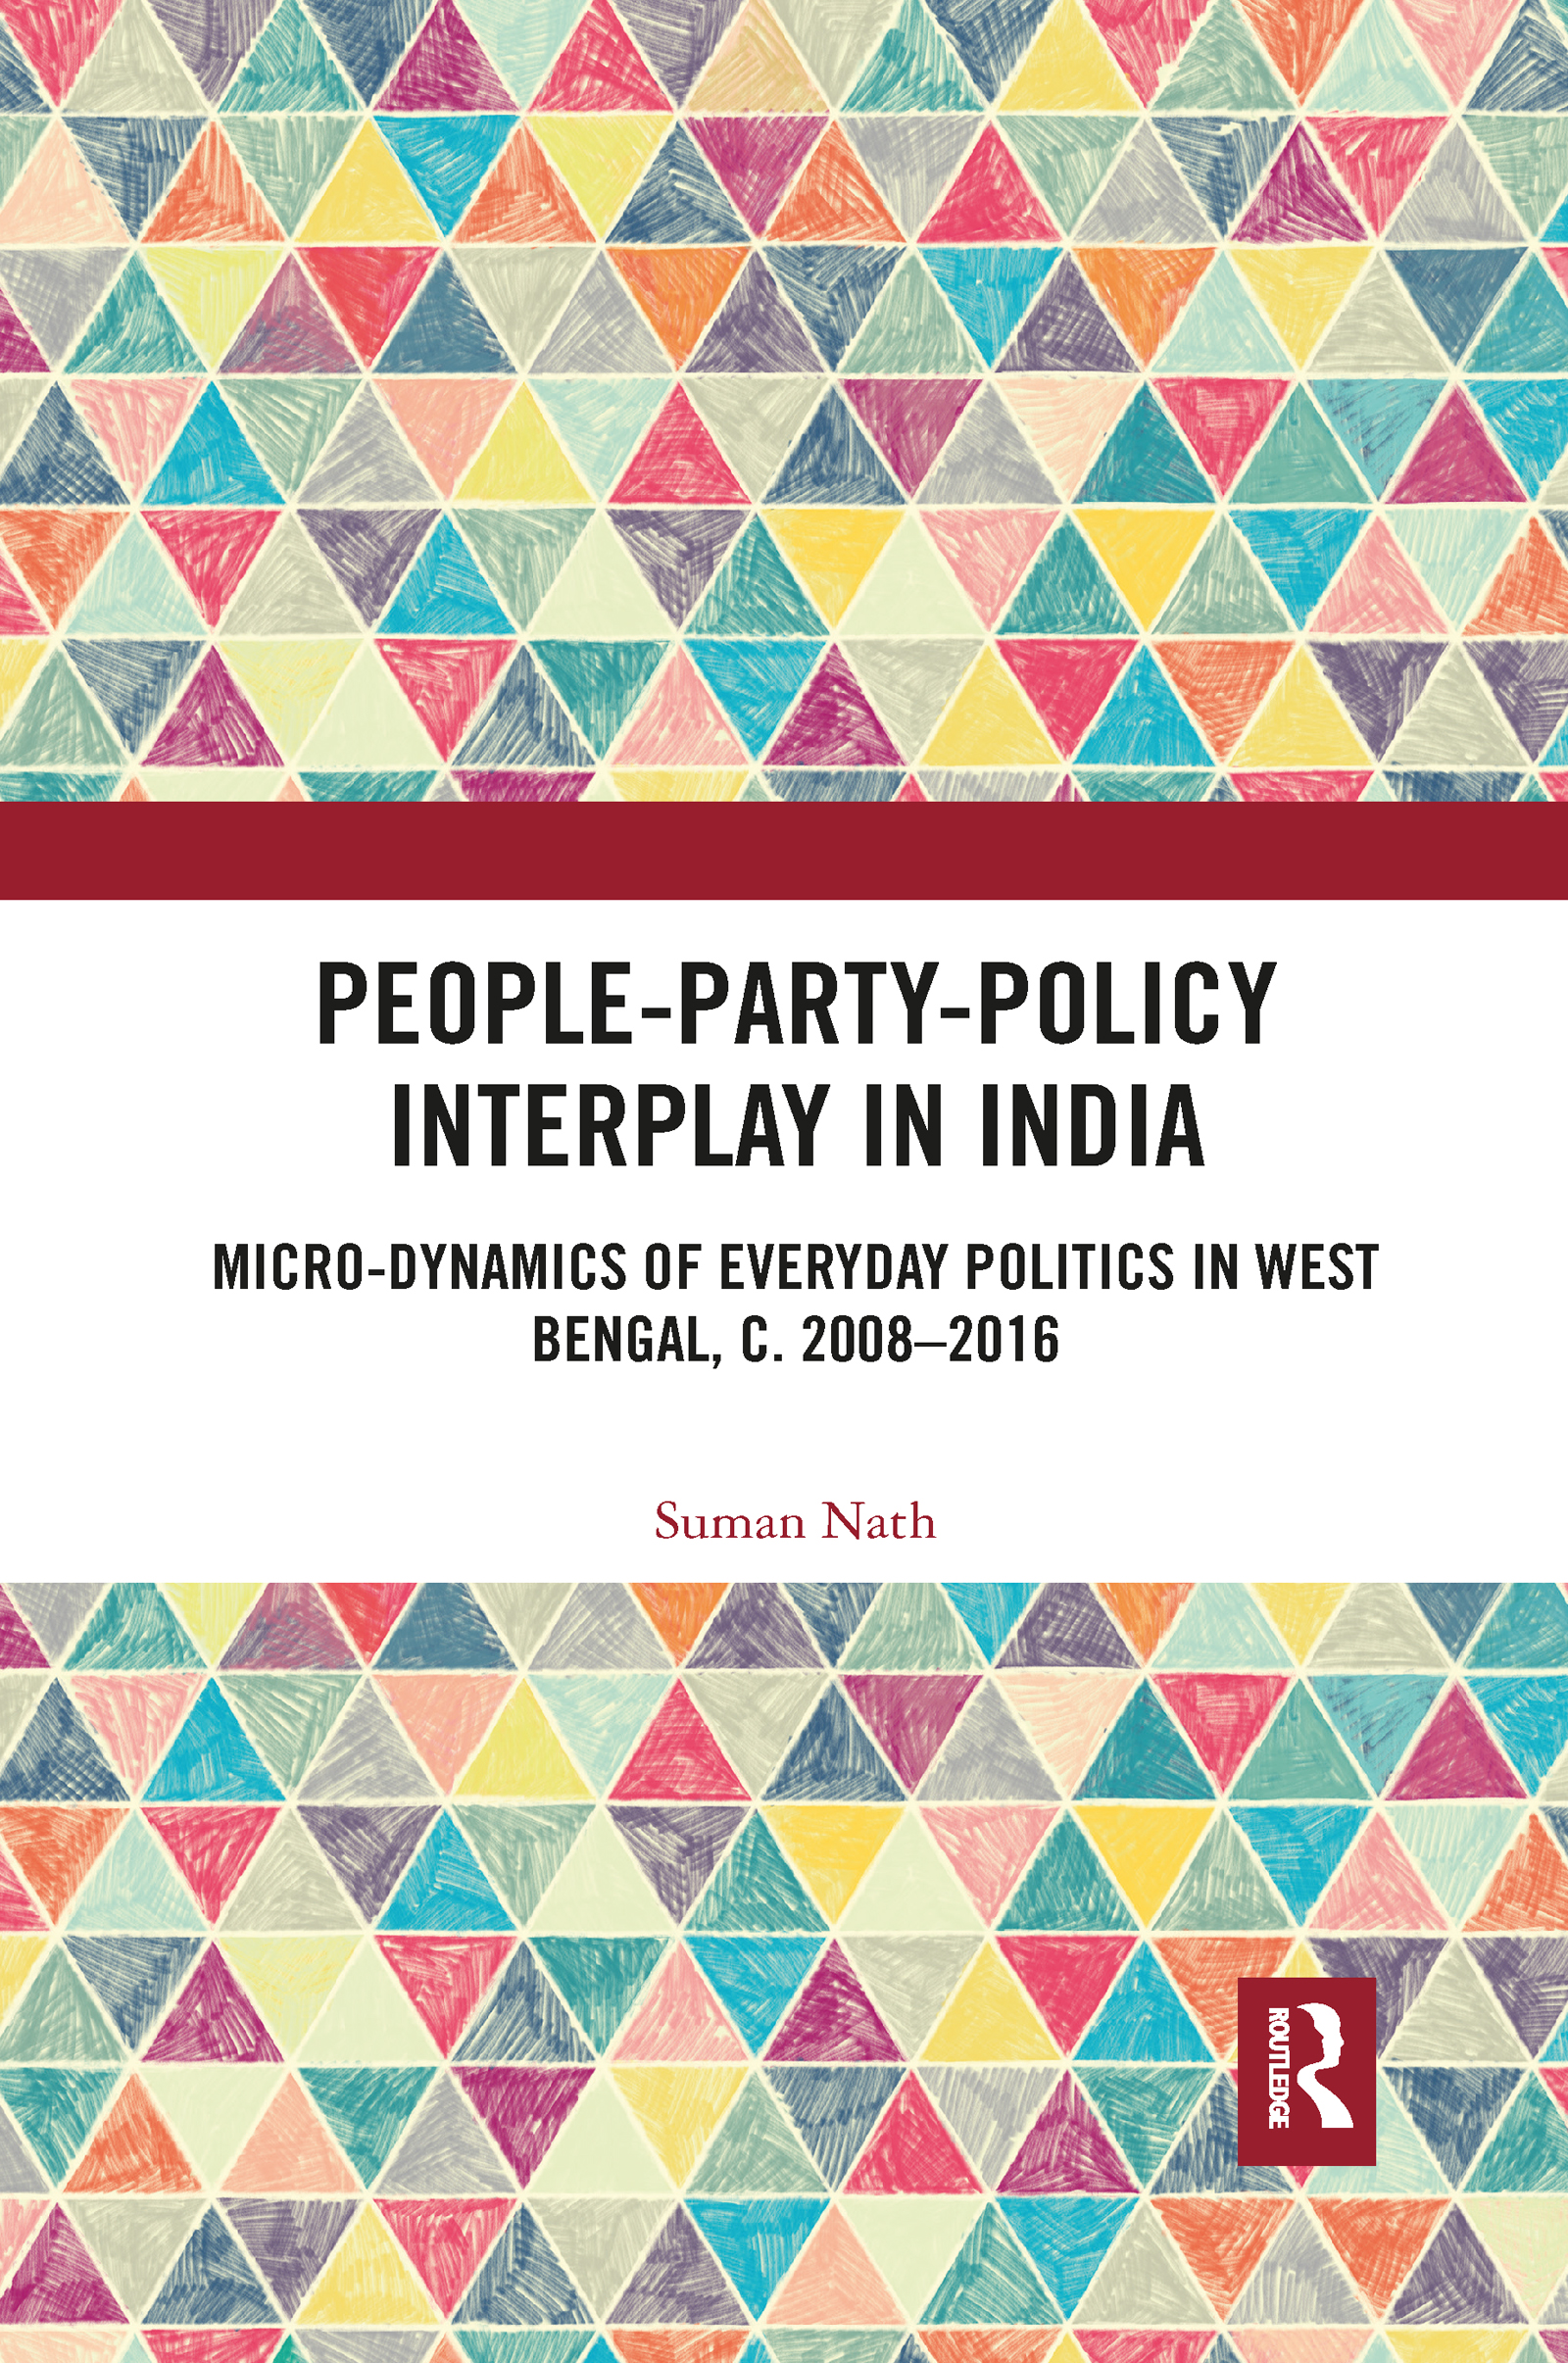 People-Party-Policy Interplay in India